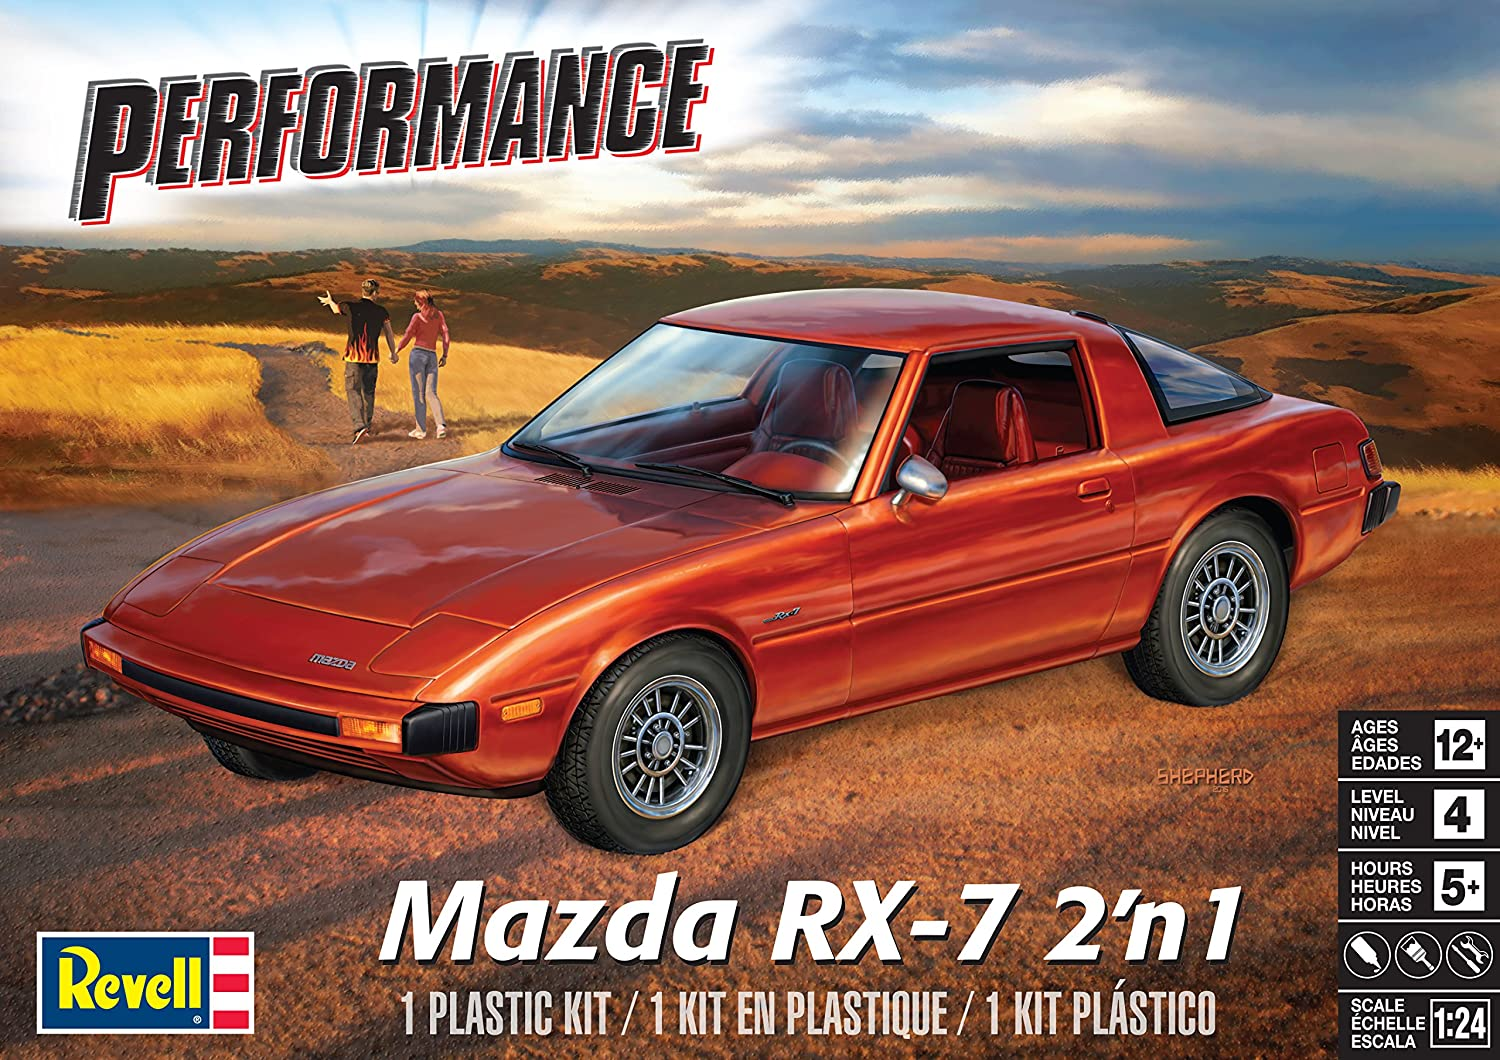 Revell Mazda RX-7 2'n1 Plastic Model Kit